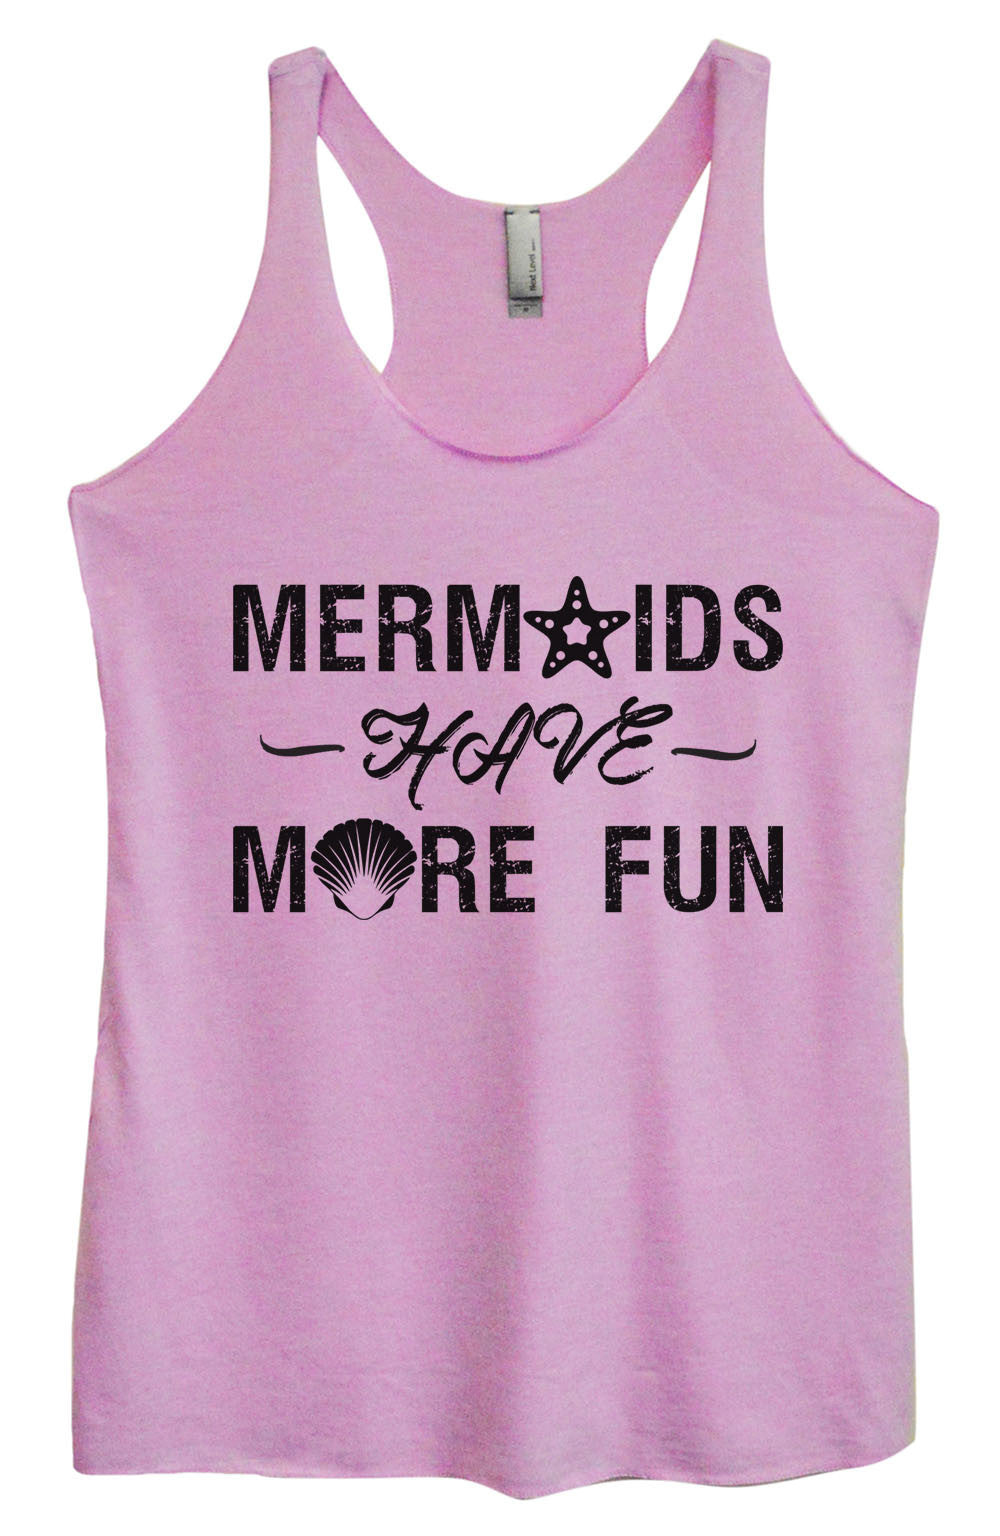 Womens Fashion Triblend Tank Top - Mermaids Have More Fun - Tri-1468 - Funny Shirts Tank Tops Burnouts and Triblends  - 1